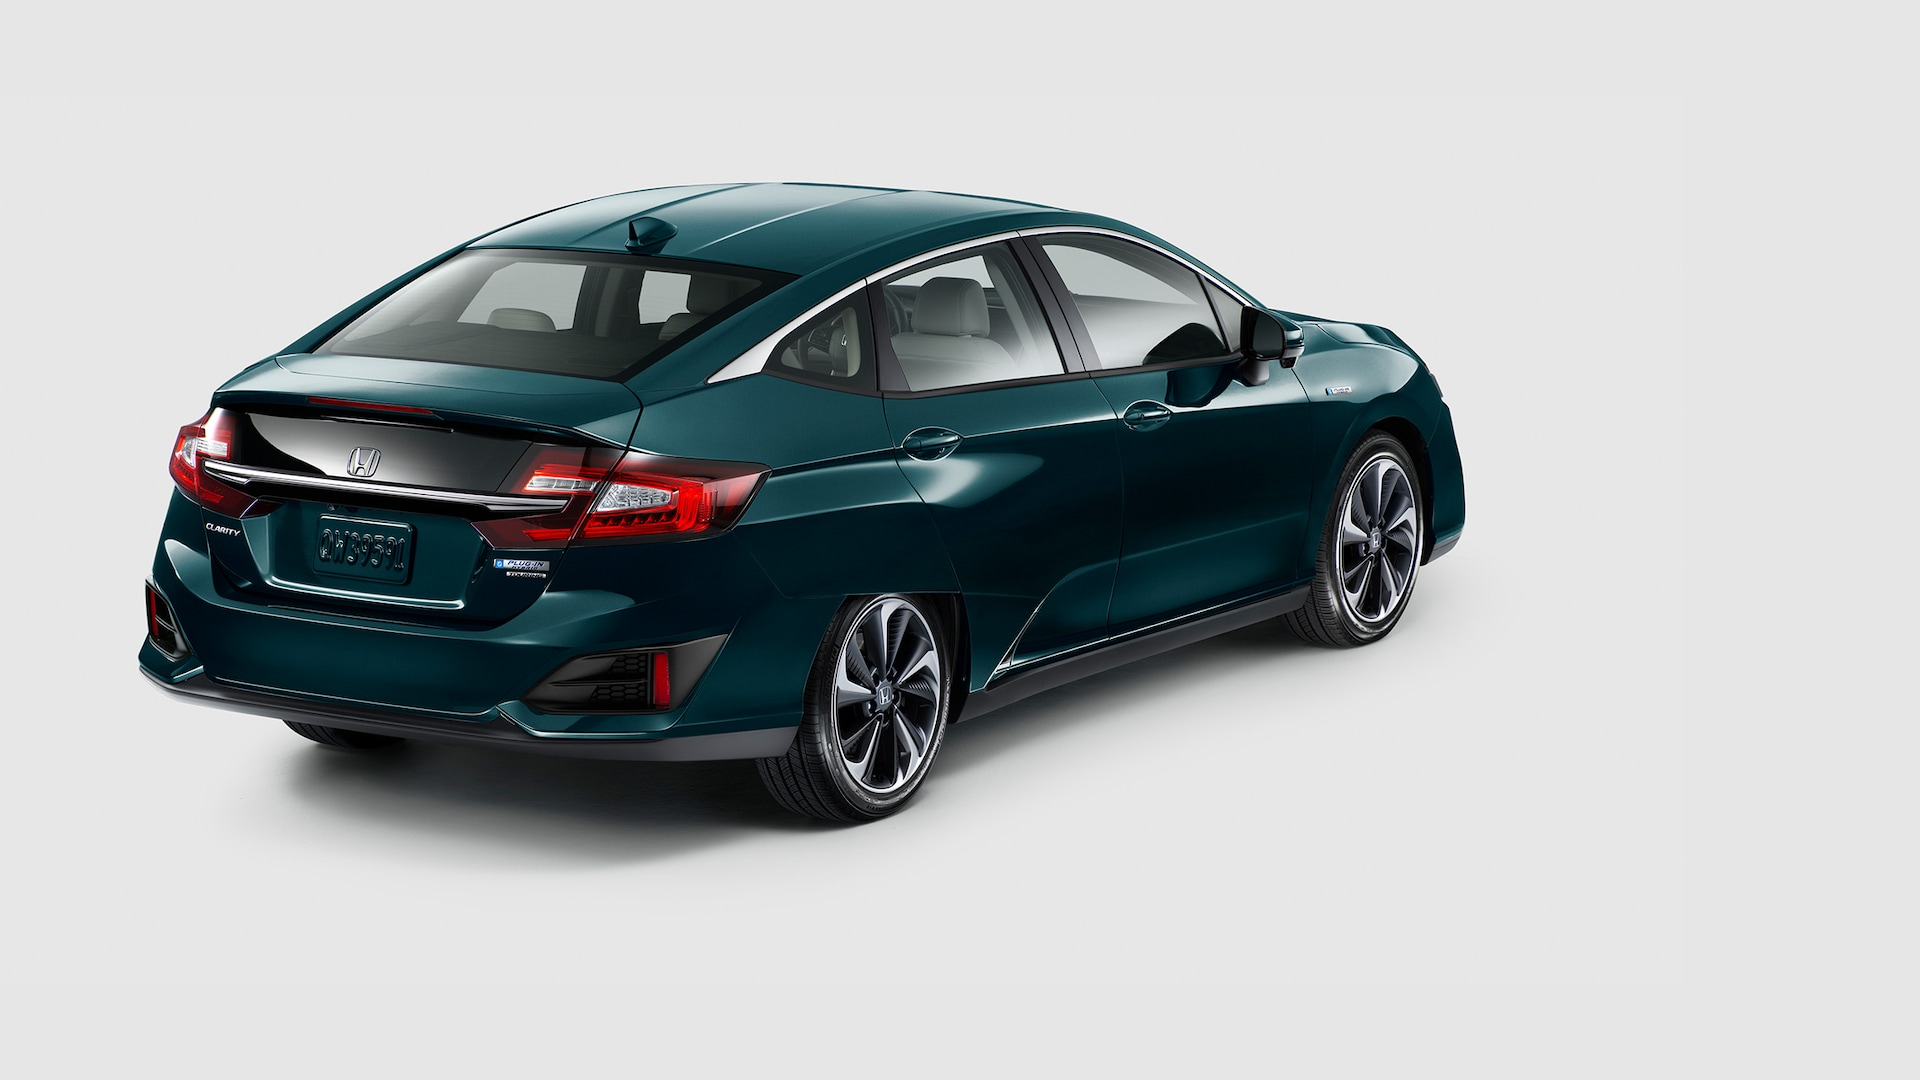 Vista trasera del Clarity Plug-In Hybrid 2020 en Moonlit Forest Pearl.